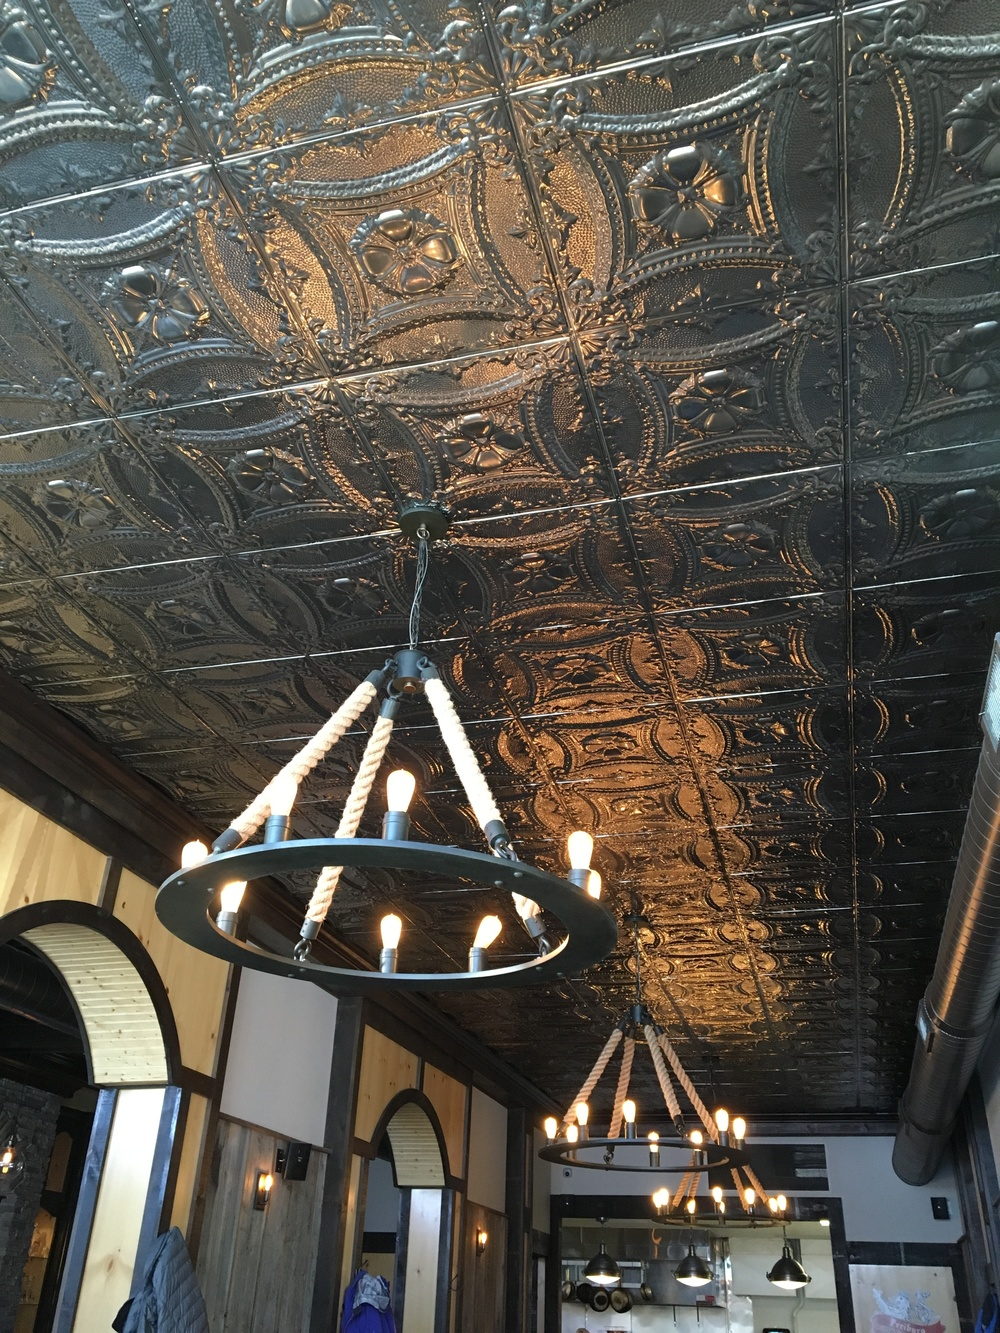 Tin ceiling &rustic style fixtures at Freiburg Gastropub                                                          Photo by Epicurean Chronicles